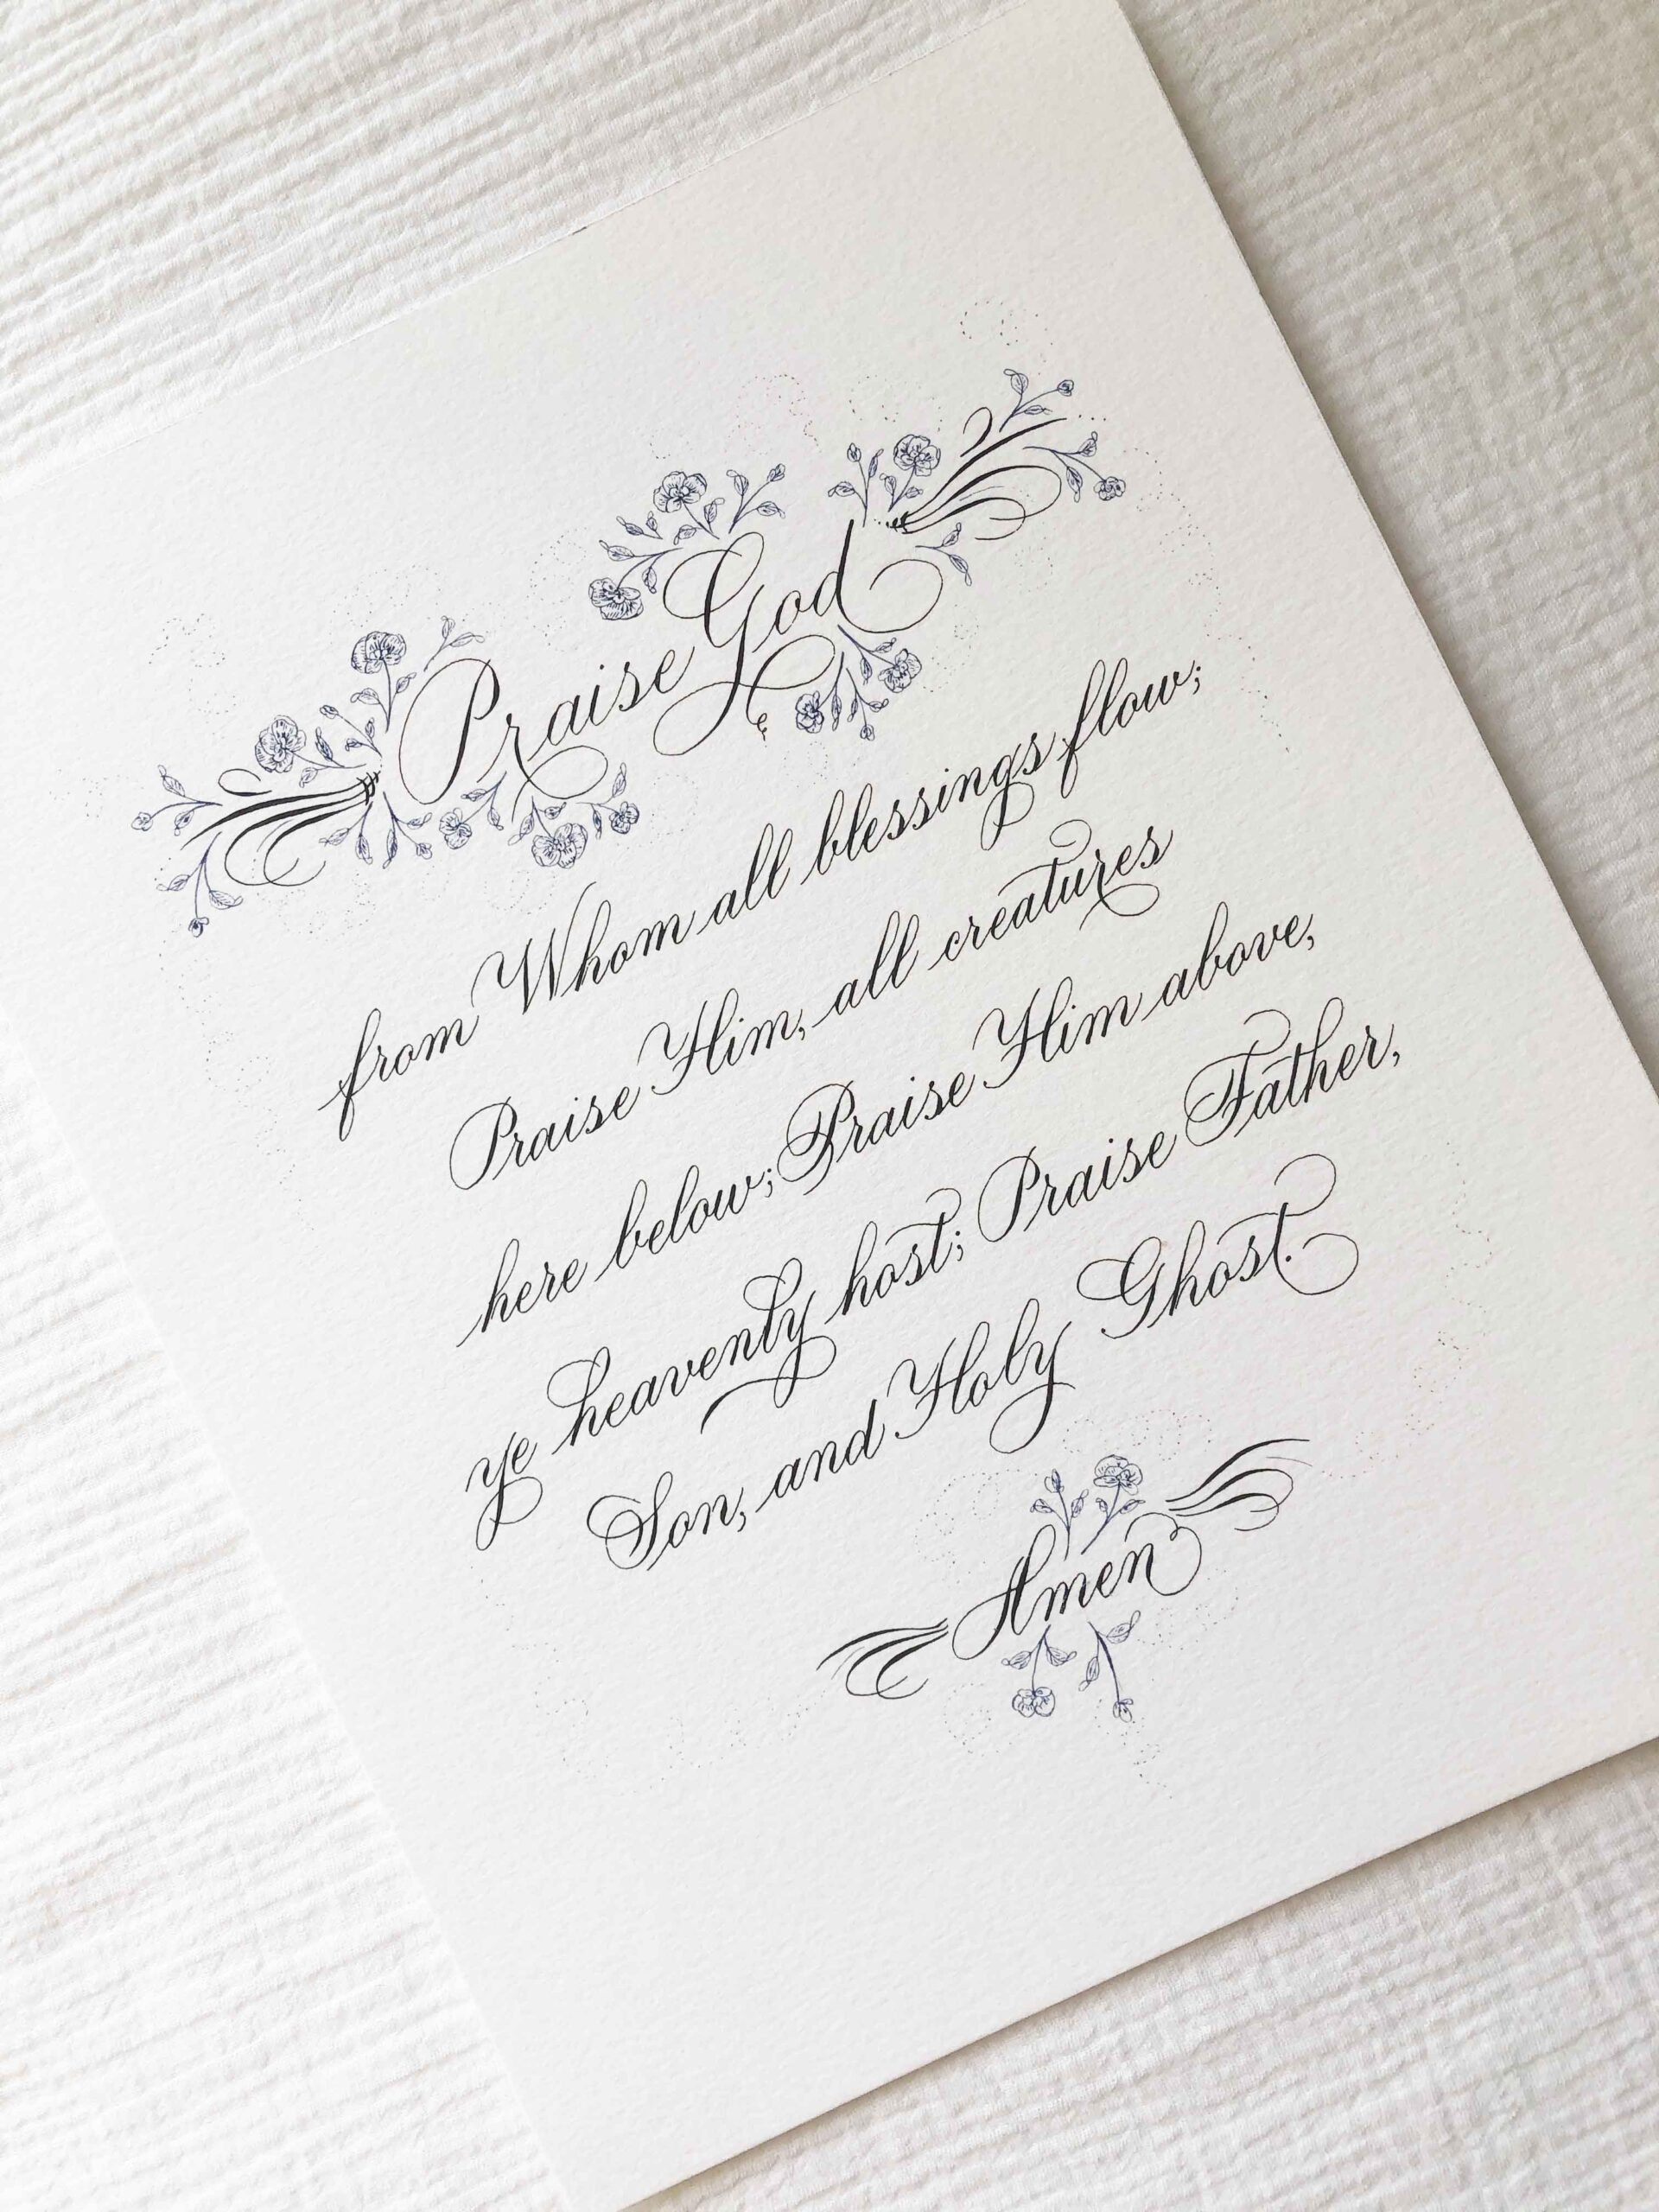 Allocco Design Norfolk, VA Calligraphy | Calligraphy Doxology